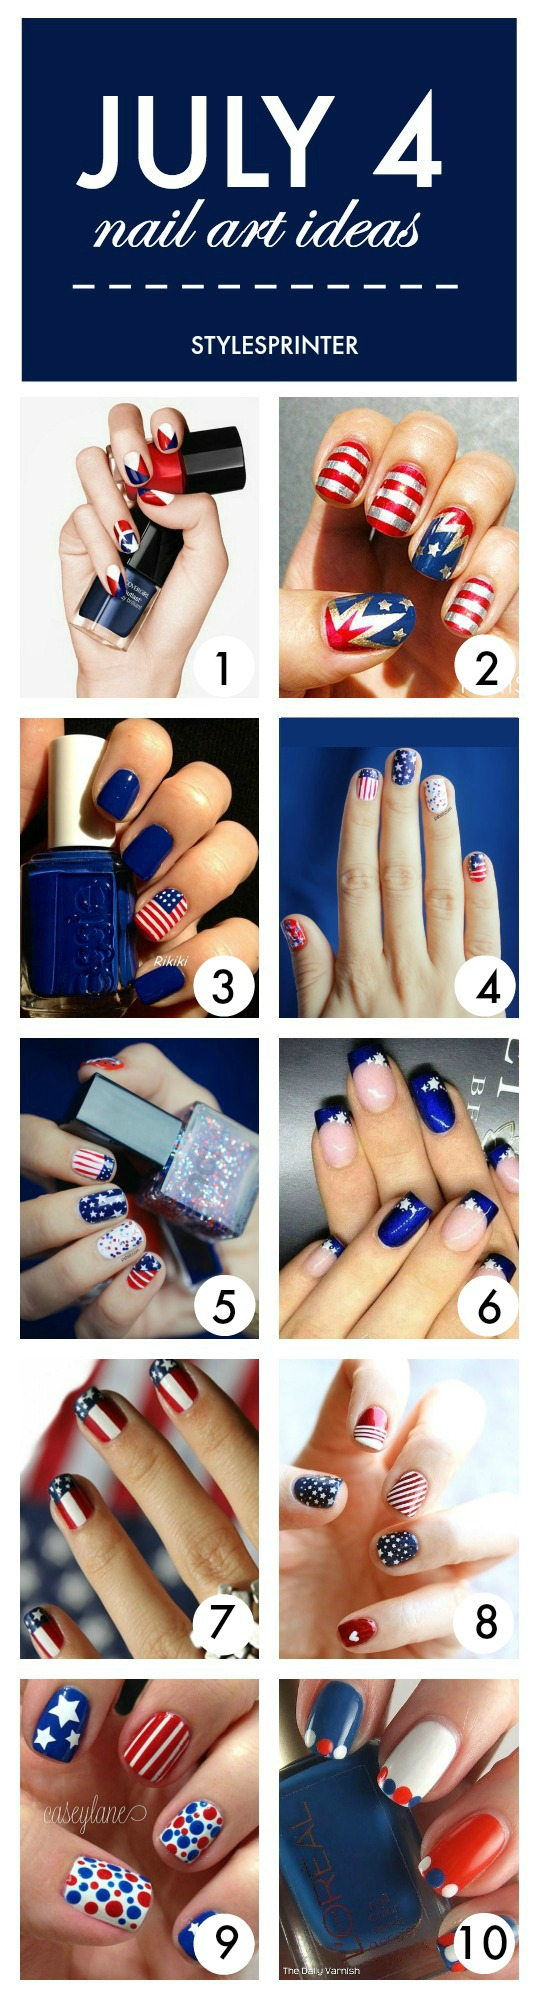 July 4th Nail Art Ideas - Patriotic Nails